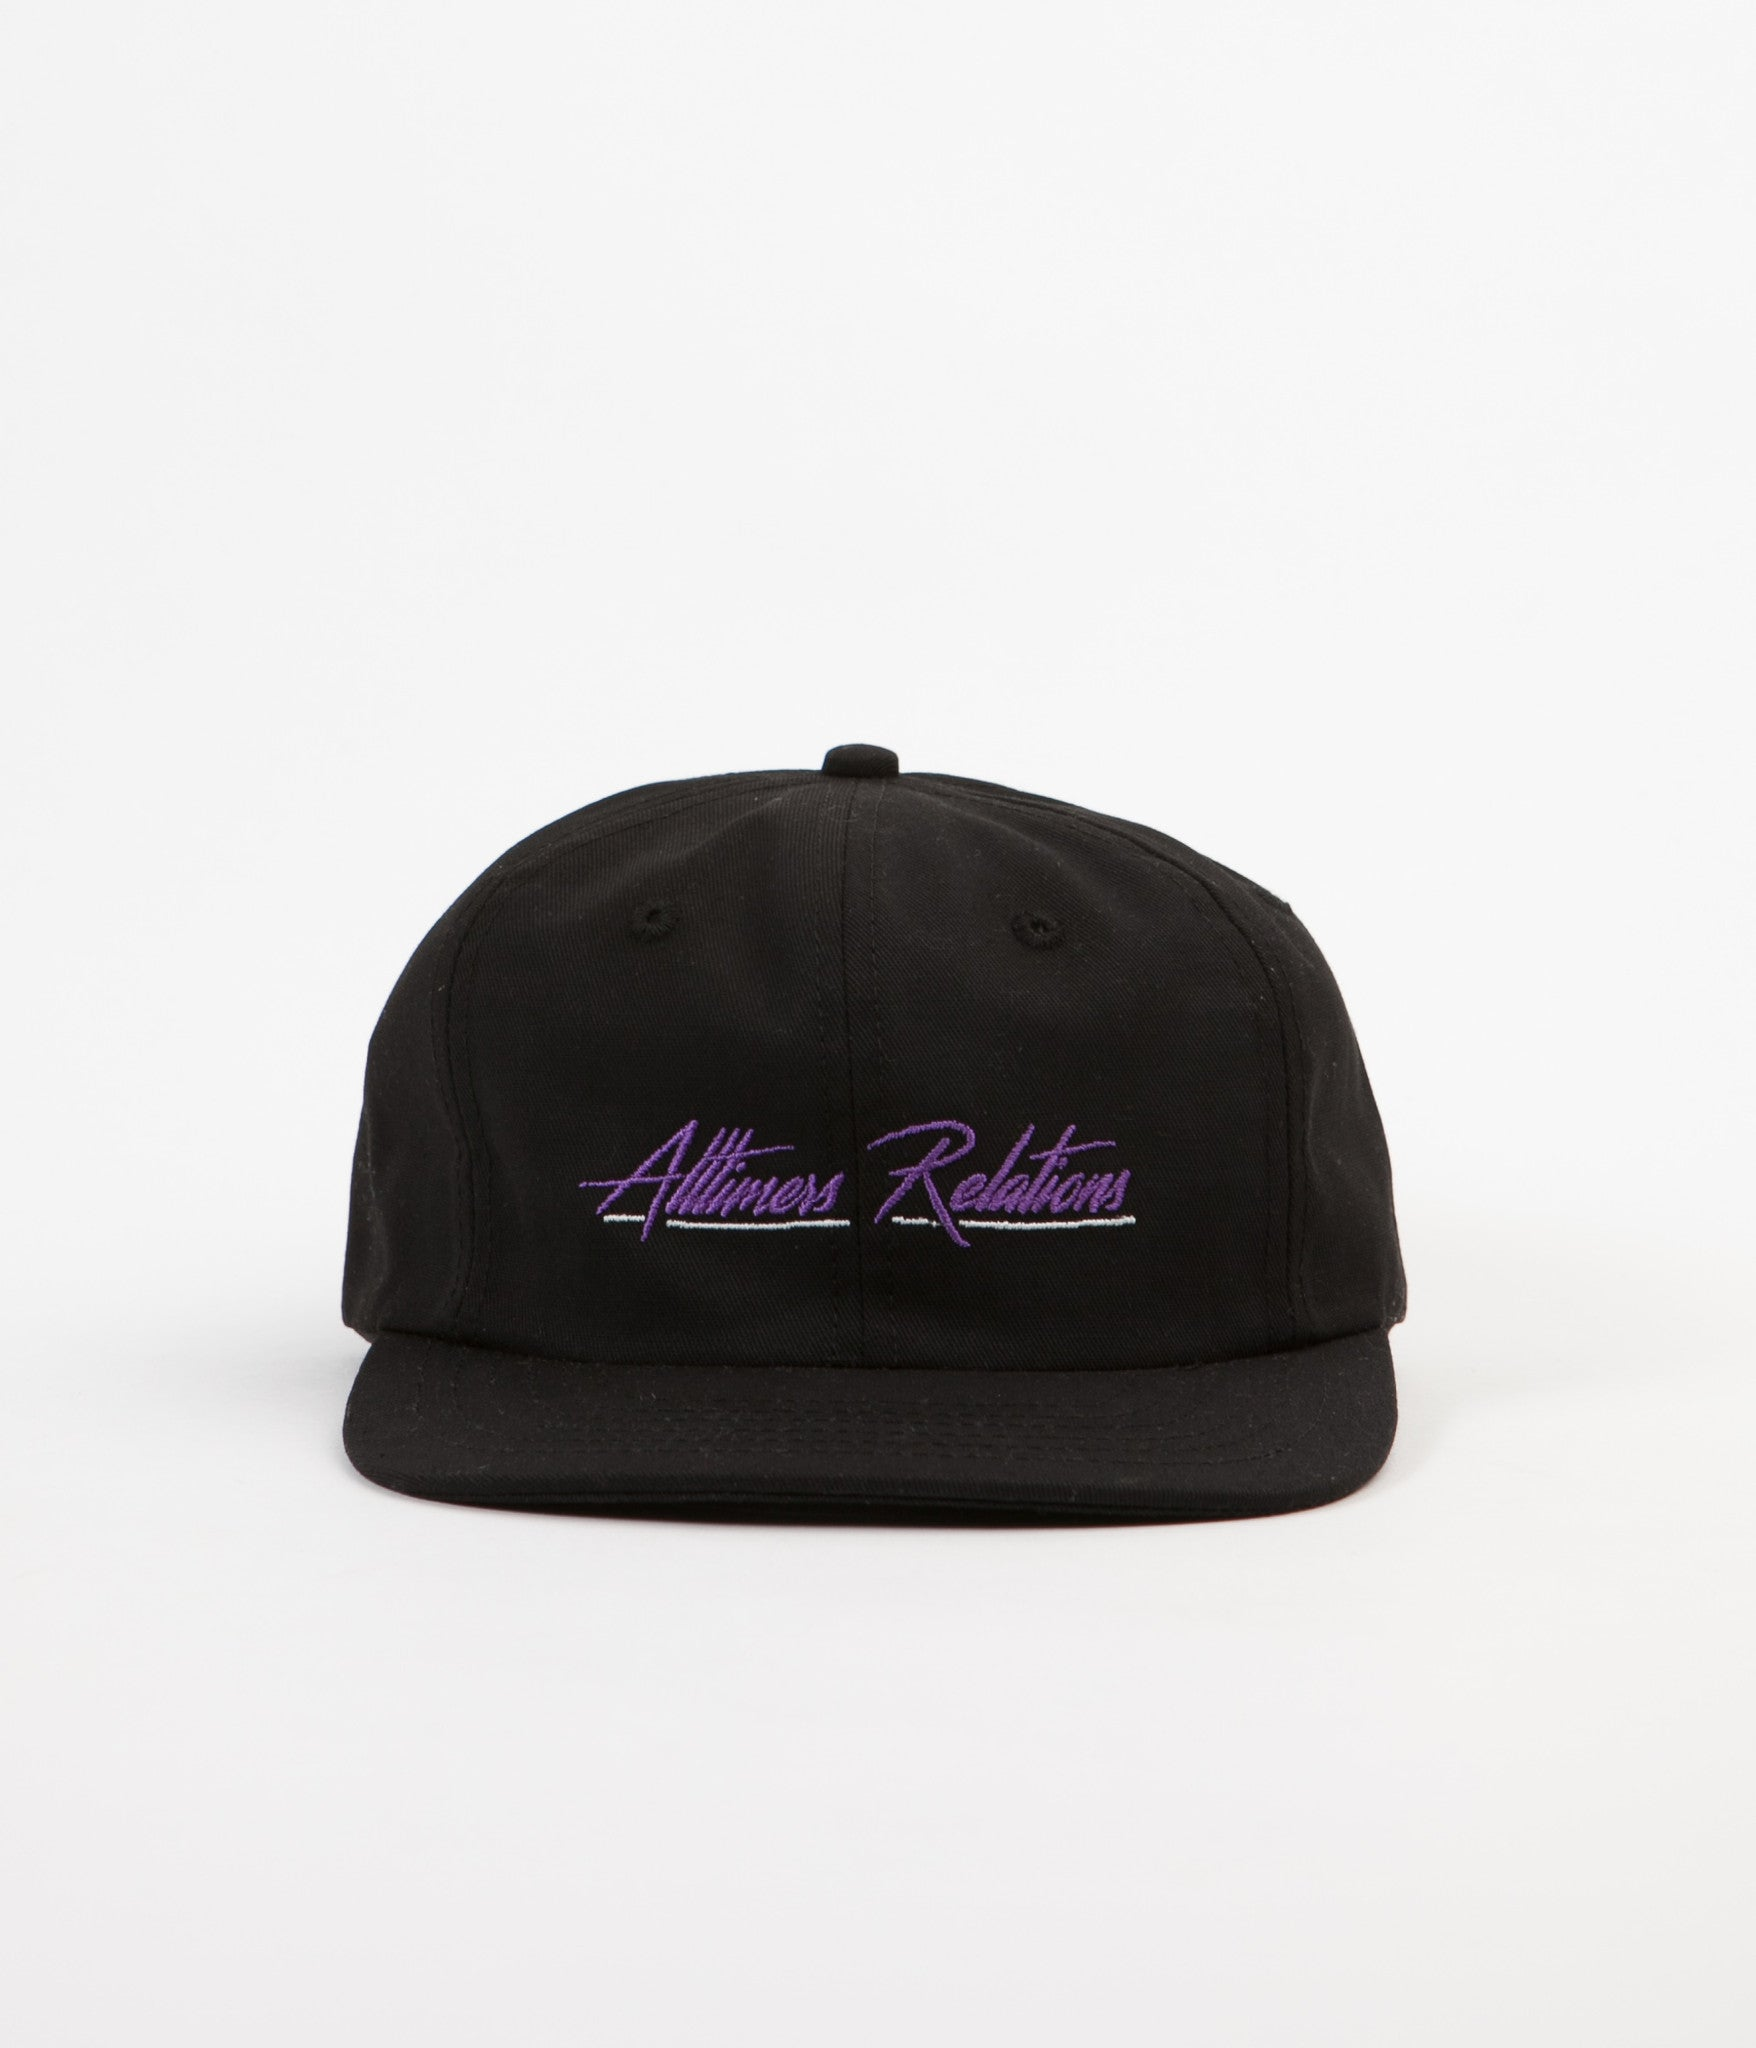 Alltimers Relations Cap - Black